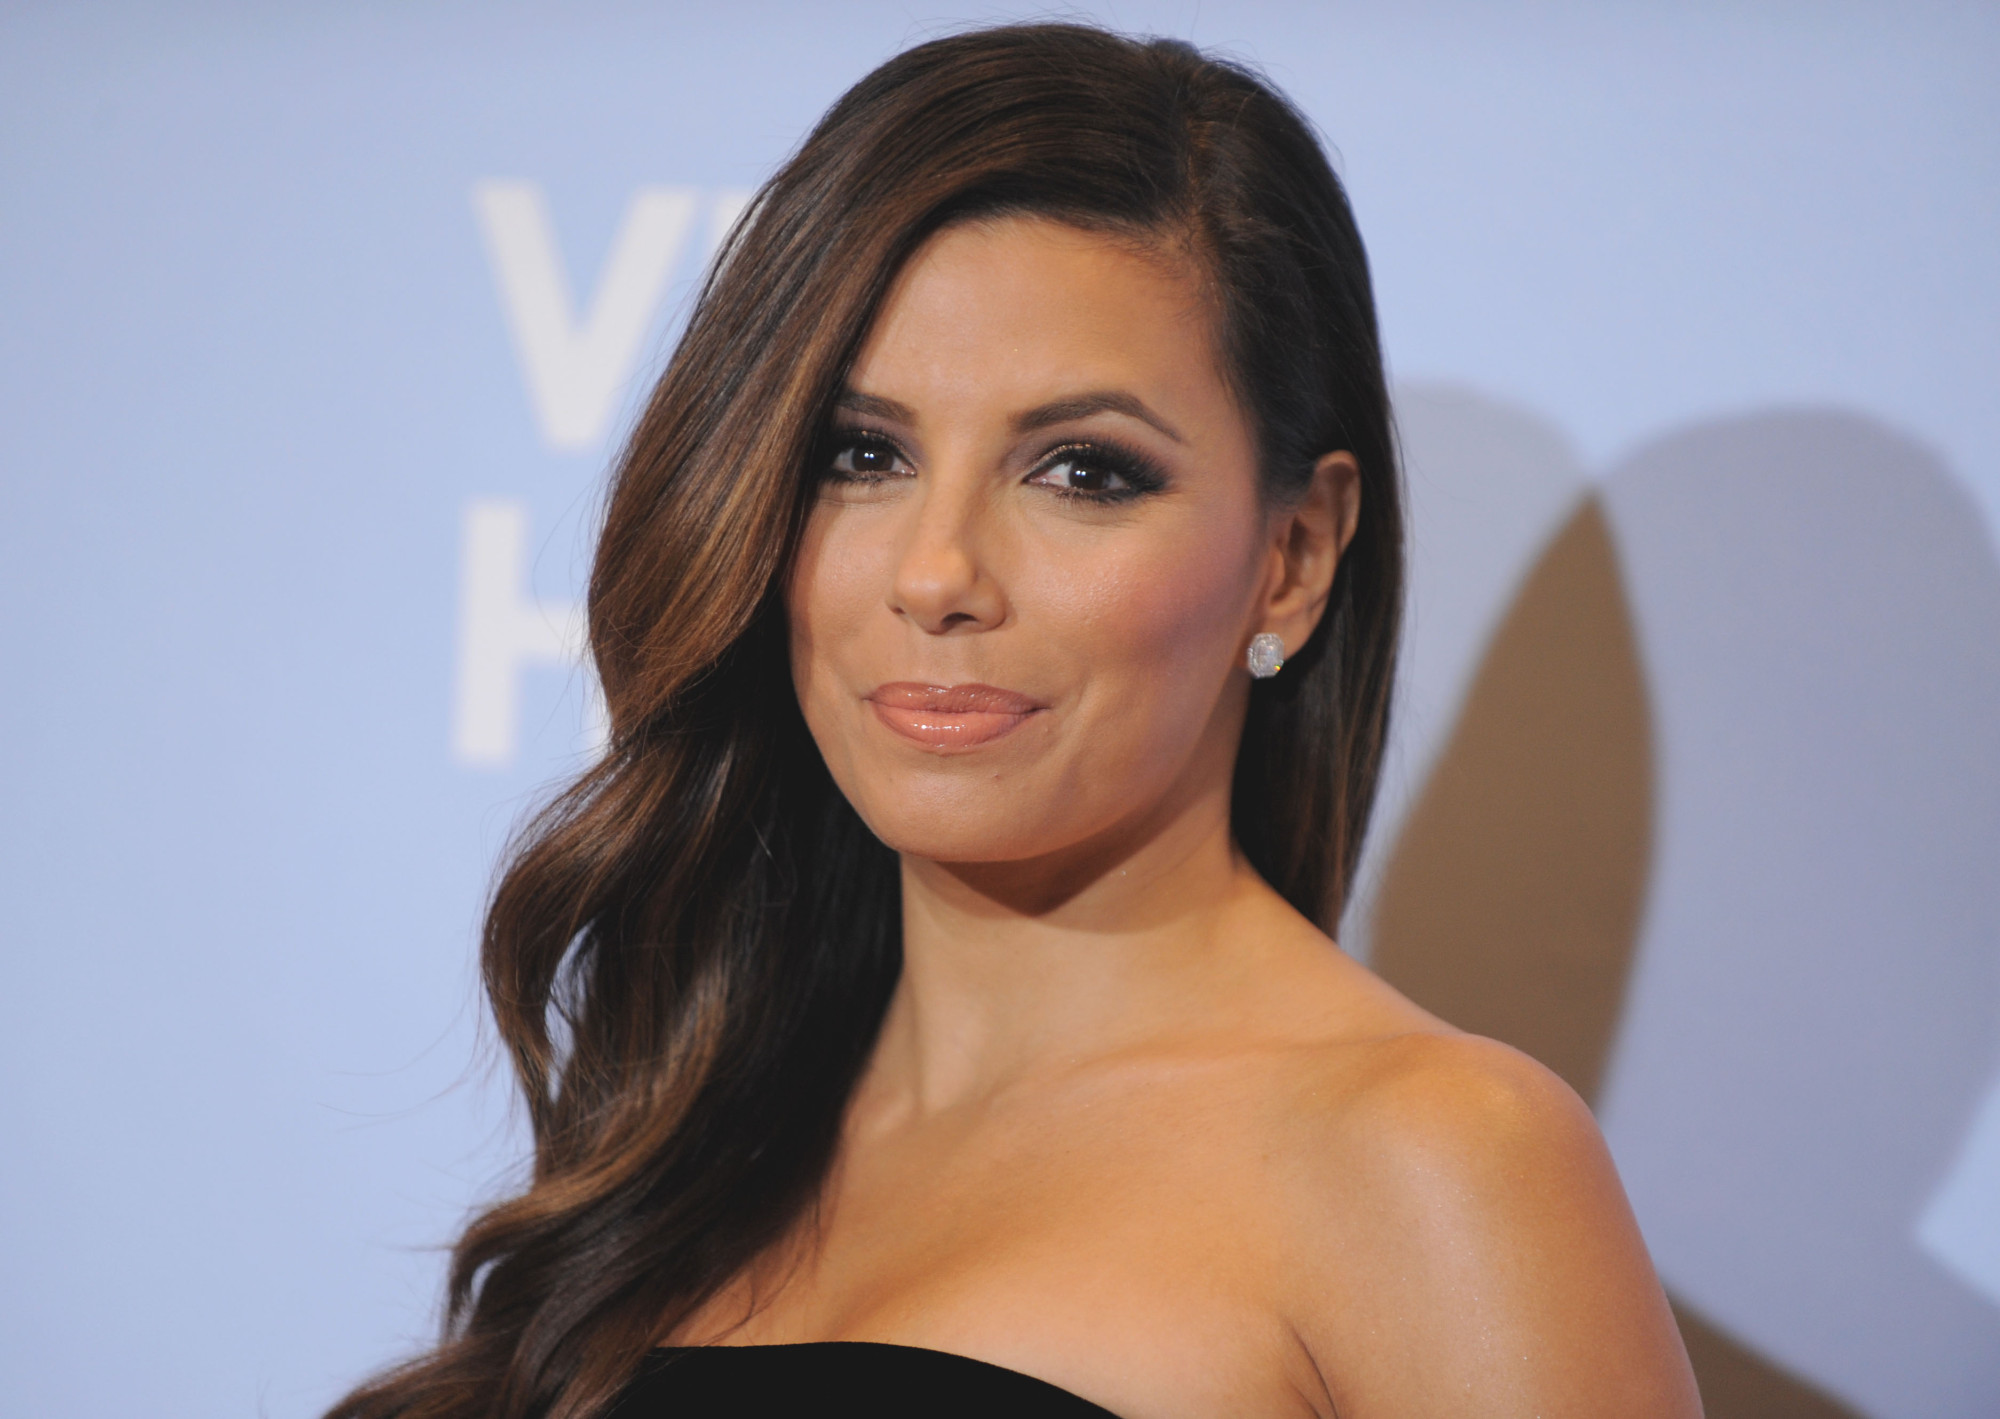 free eva longoria stunning smile pose hd background download mobile images